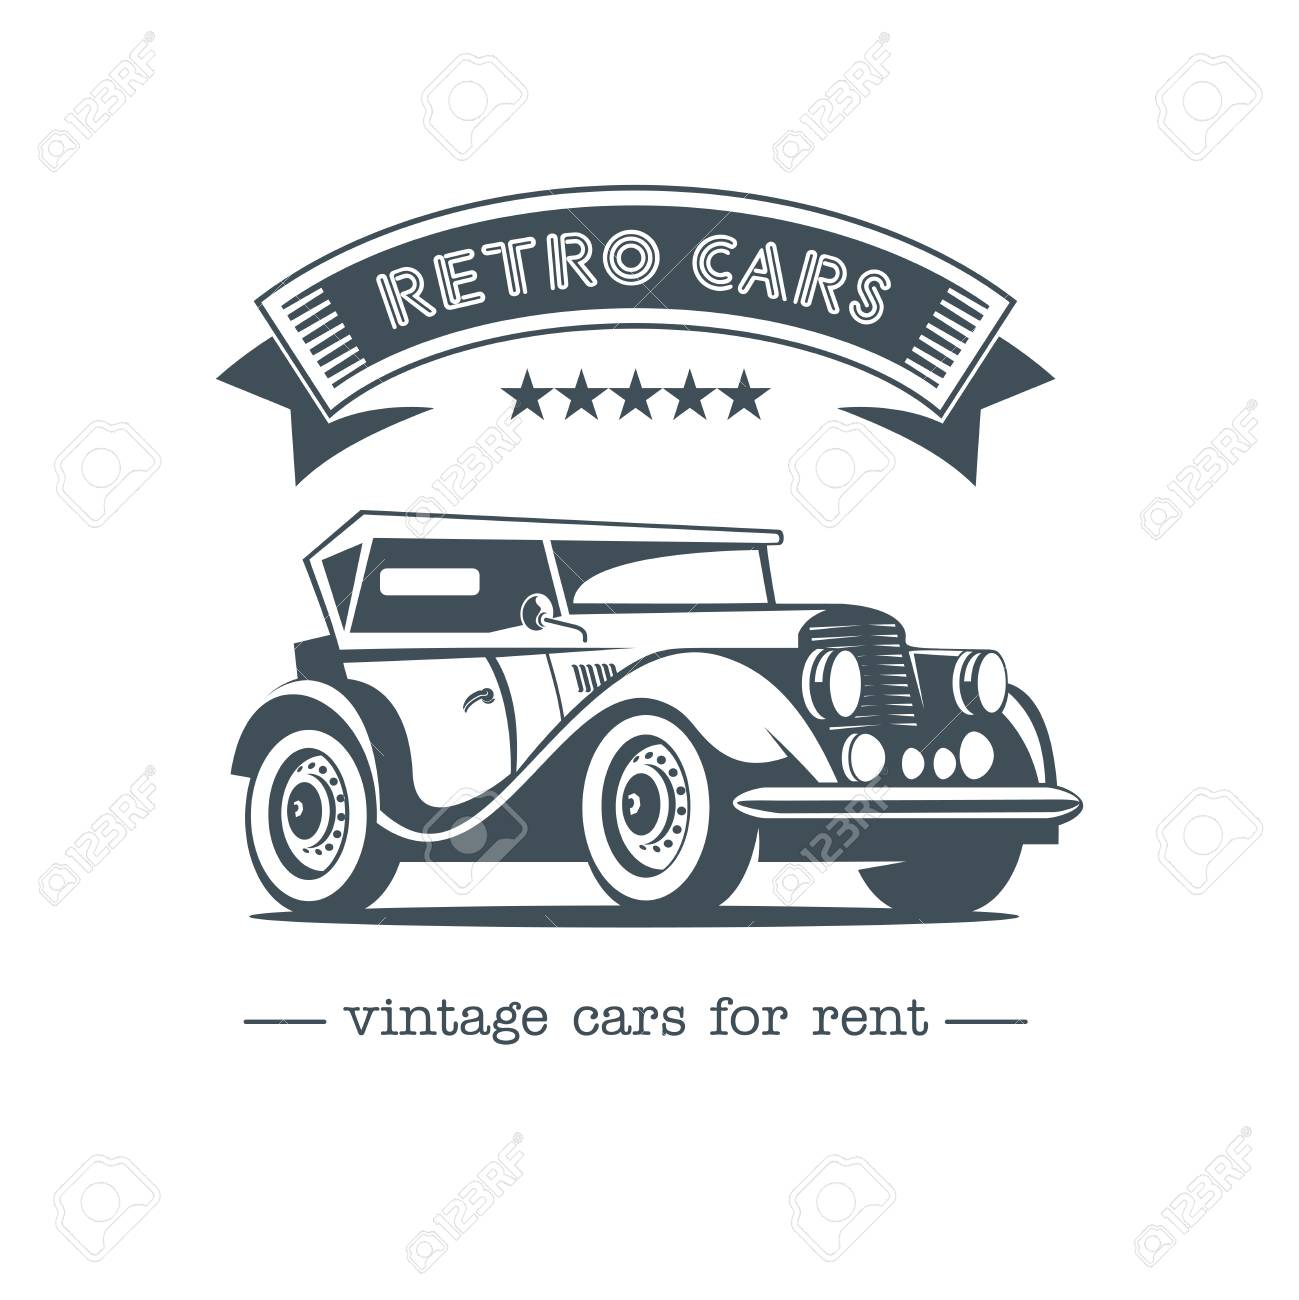 retro car vintage car vector logo vintage cars for rent isolated rh 123rf com vintage car logo vector antique car vector